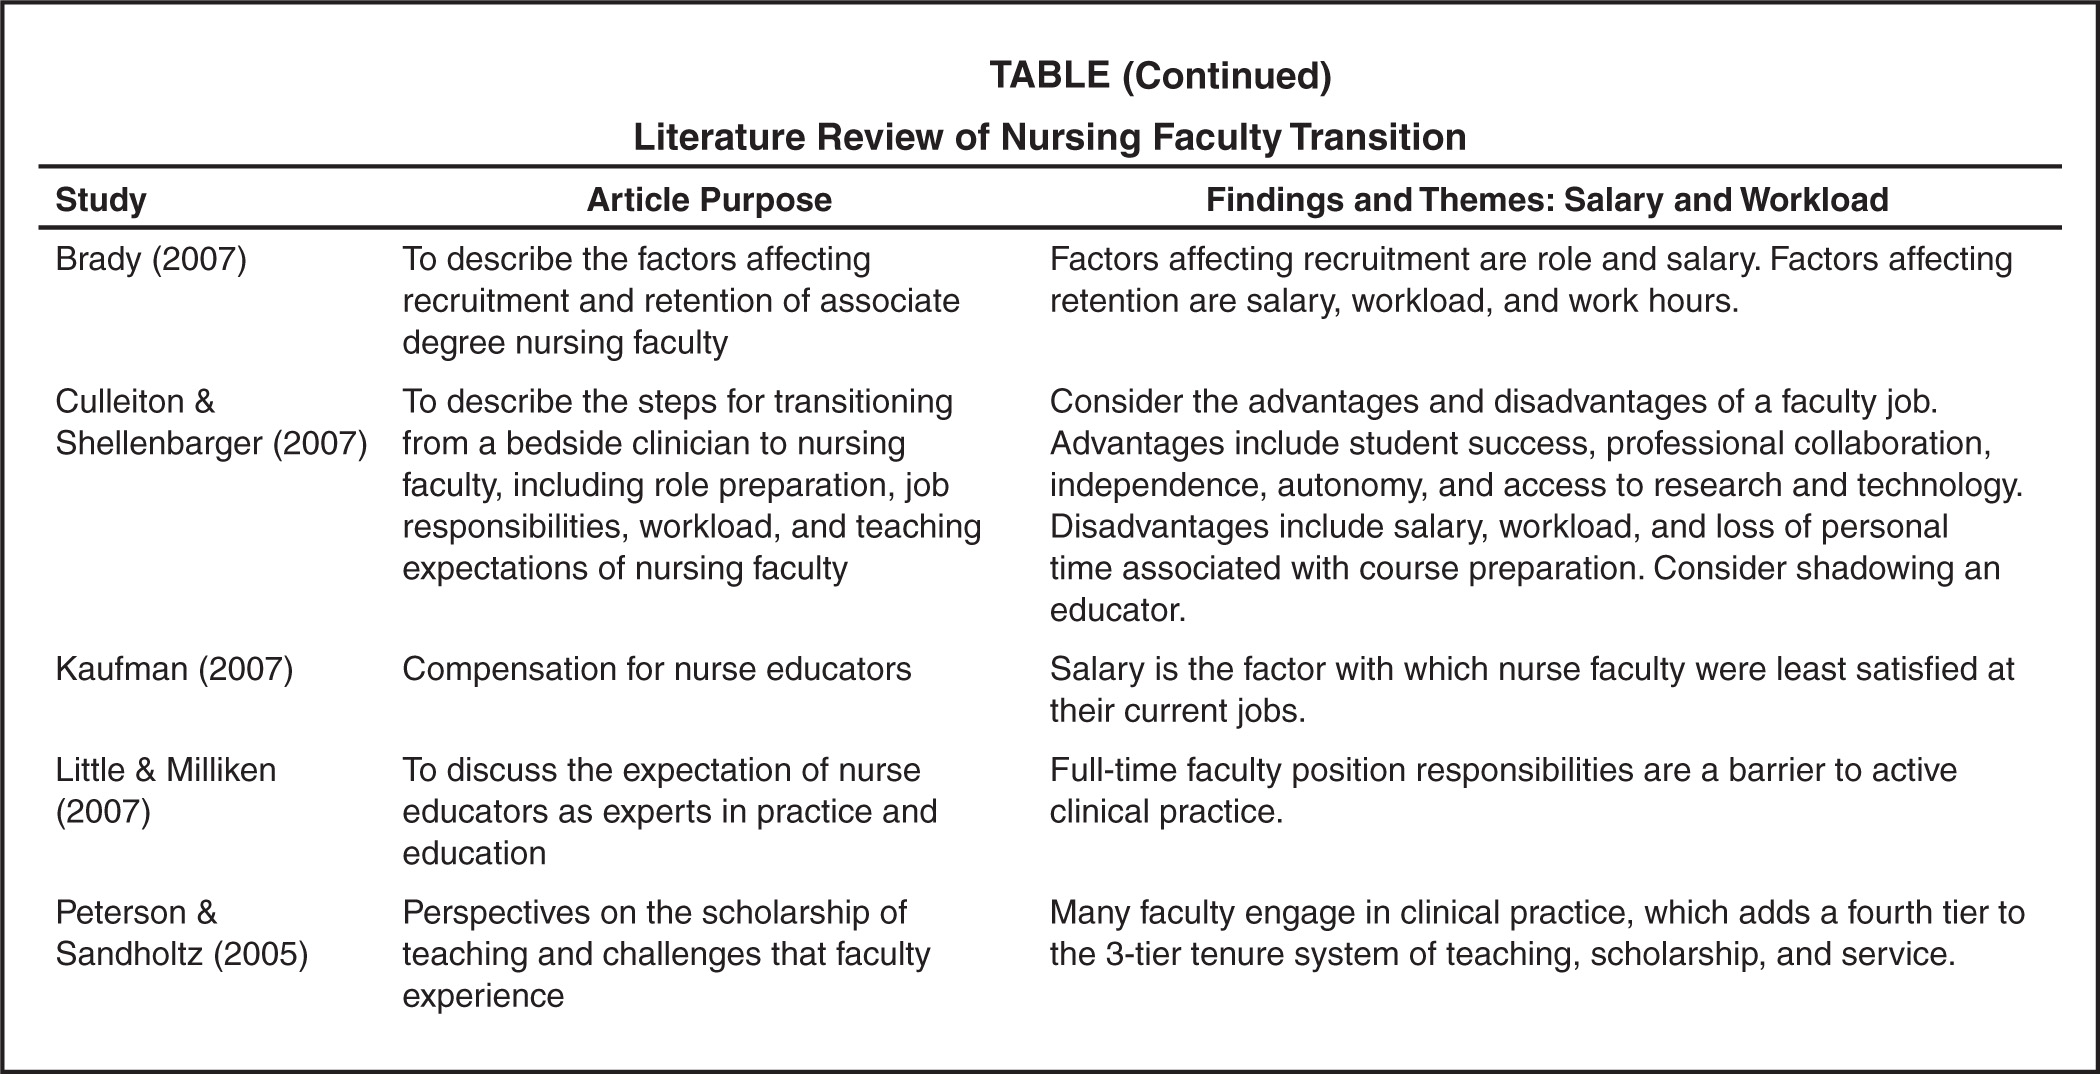 Literature Review of Nursing Faculty Transition